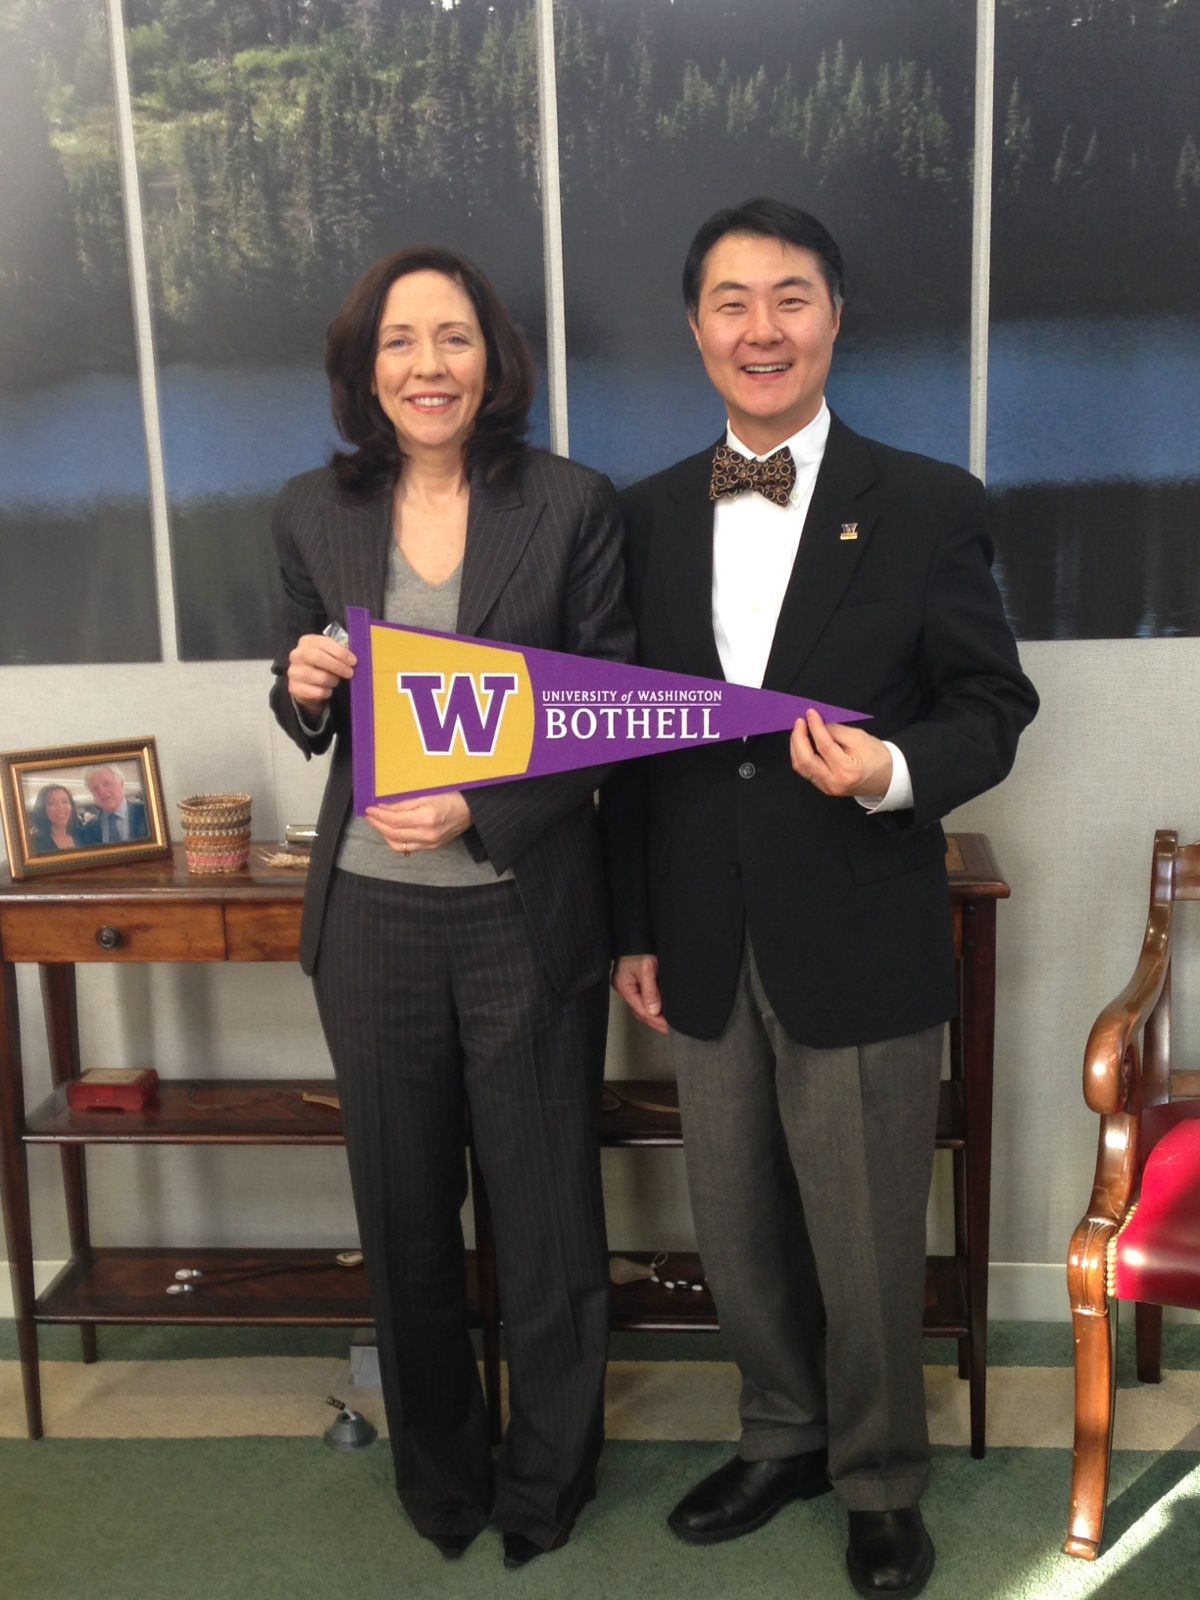 Senator Maria Cantwell with Chancellor Wolf Yeigh